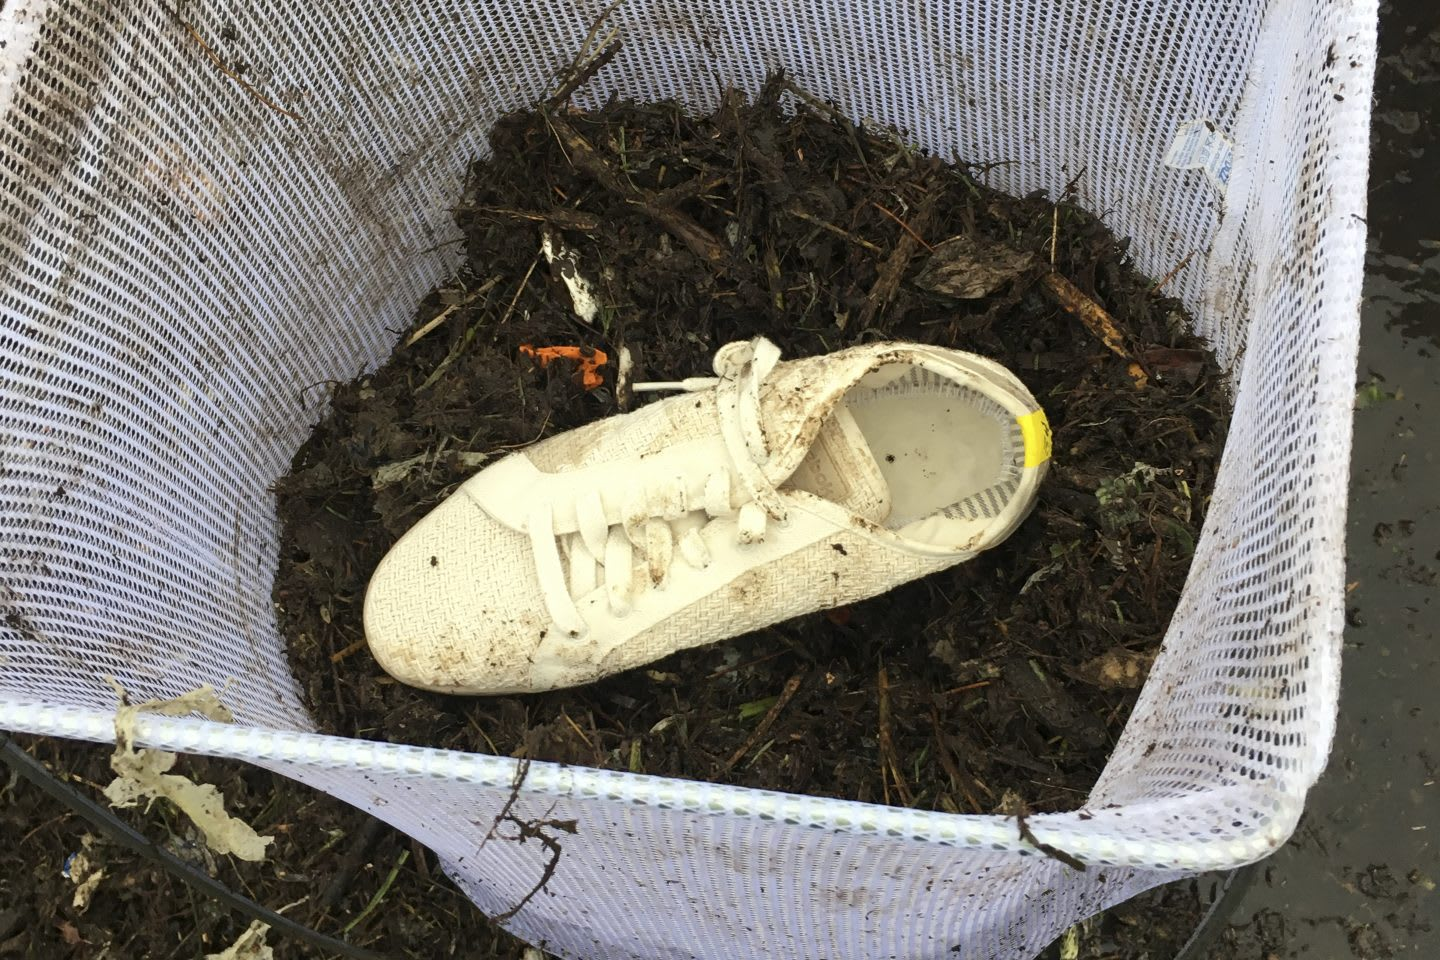 Reebok shoes in the compost bin, plant-based, sustainability, dirt, Reebok